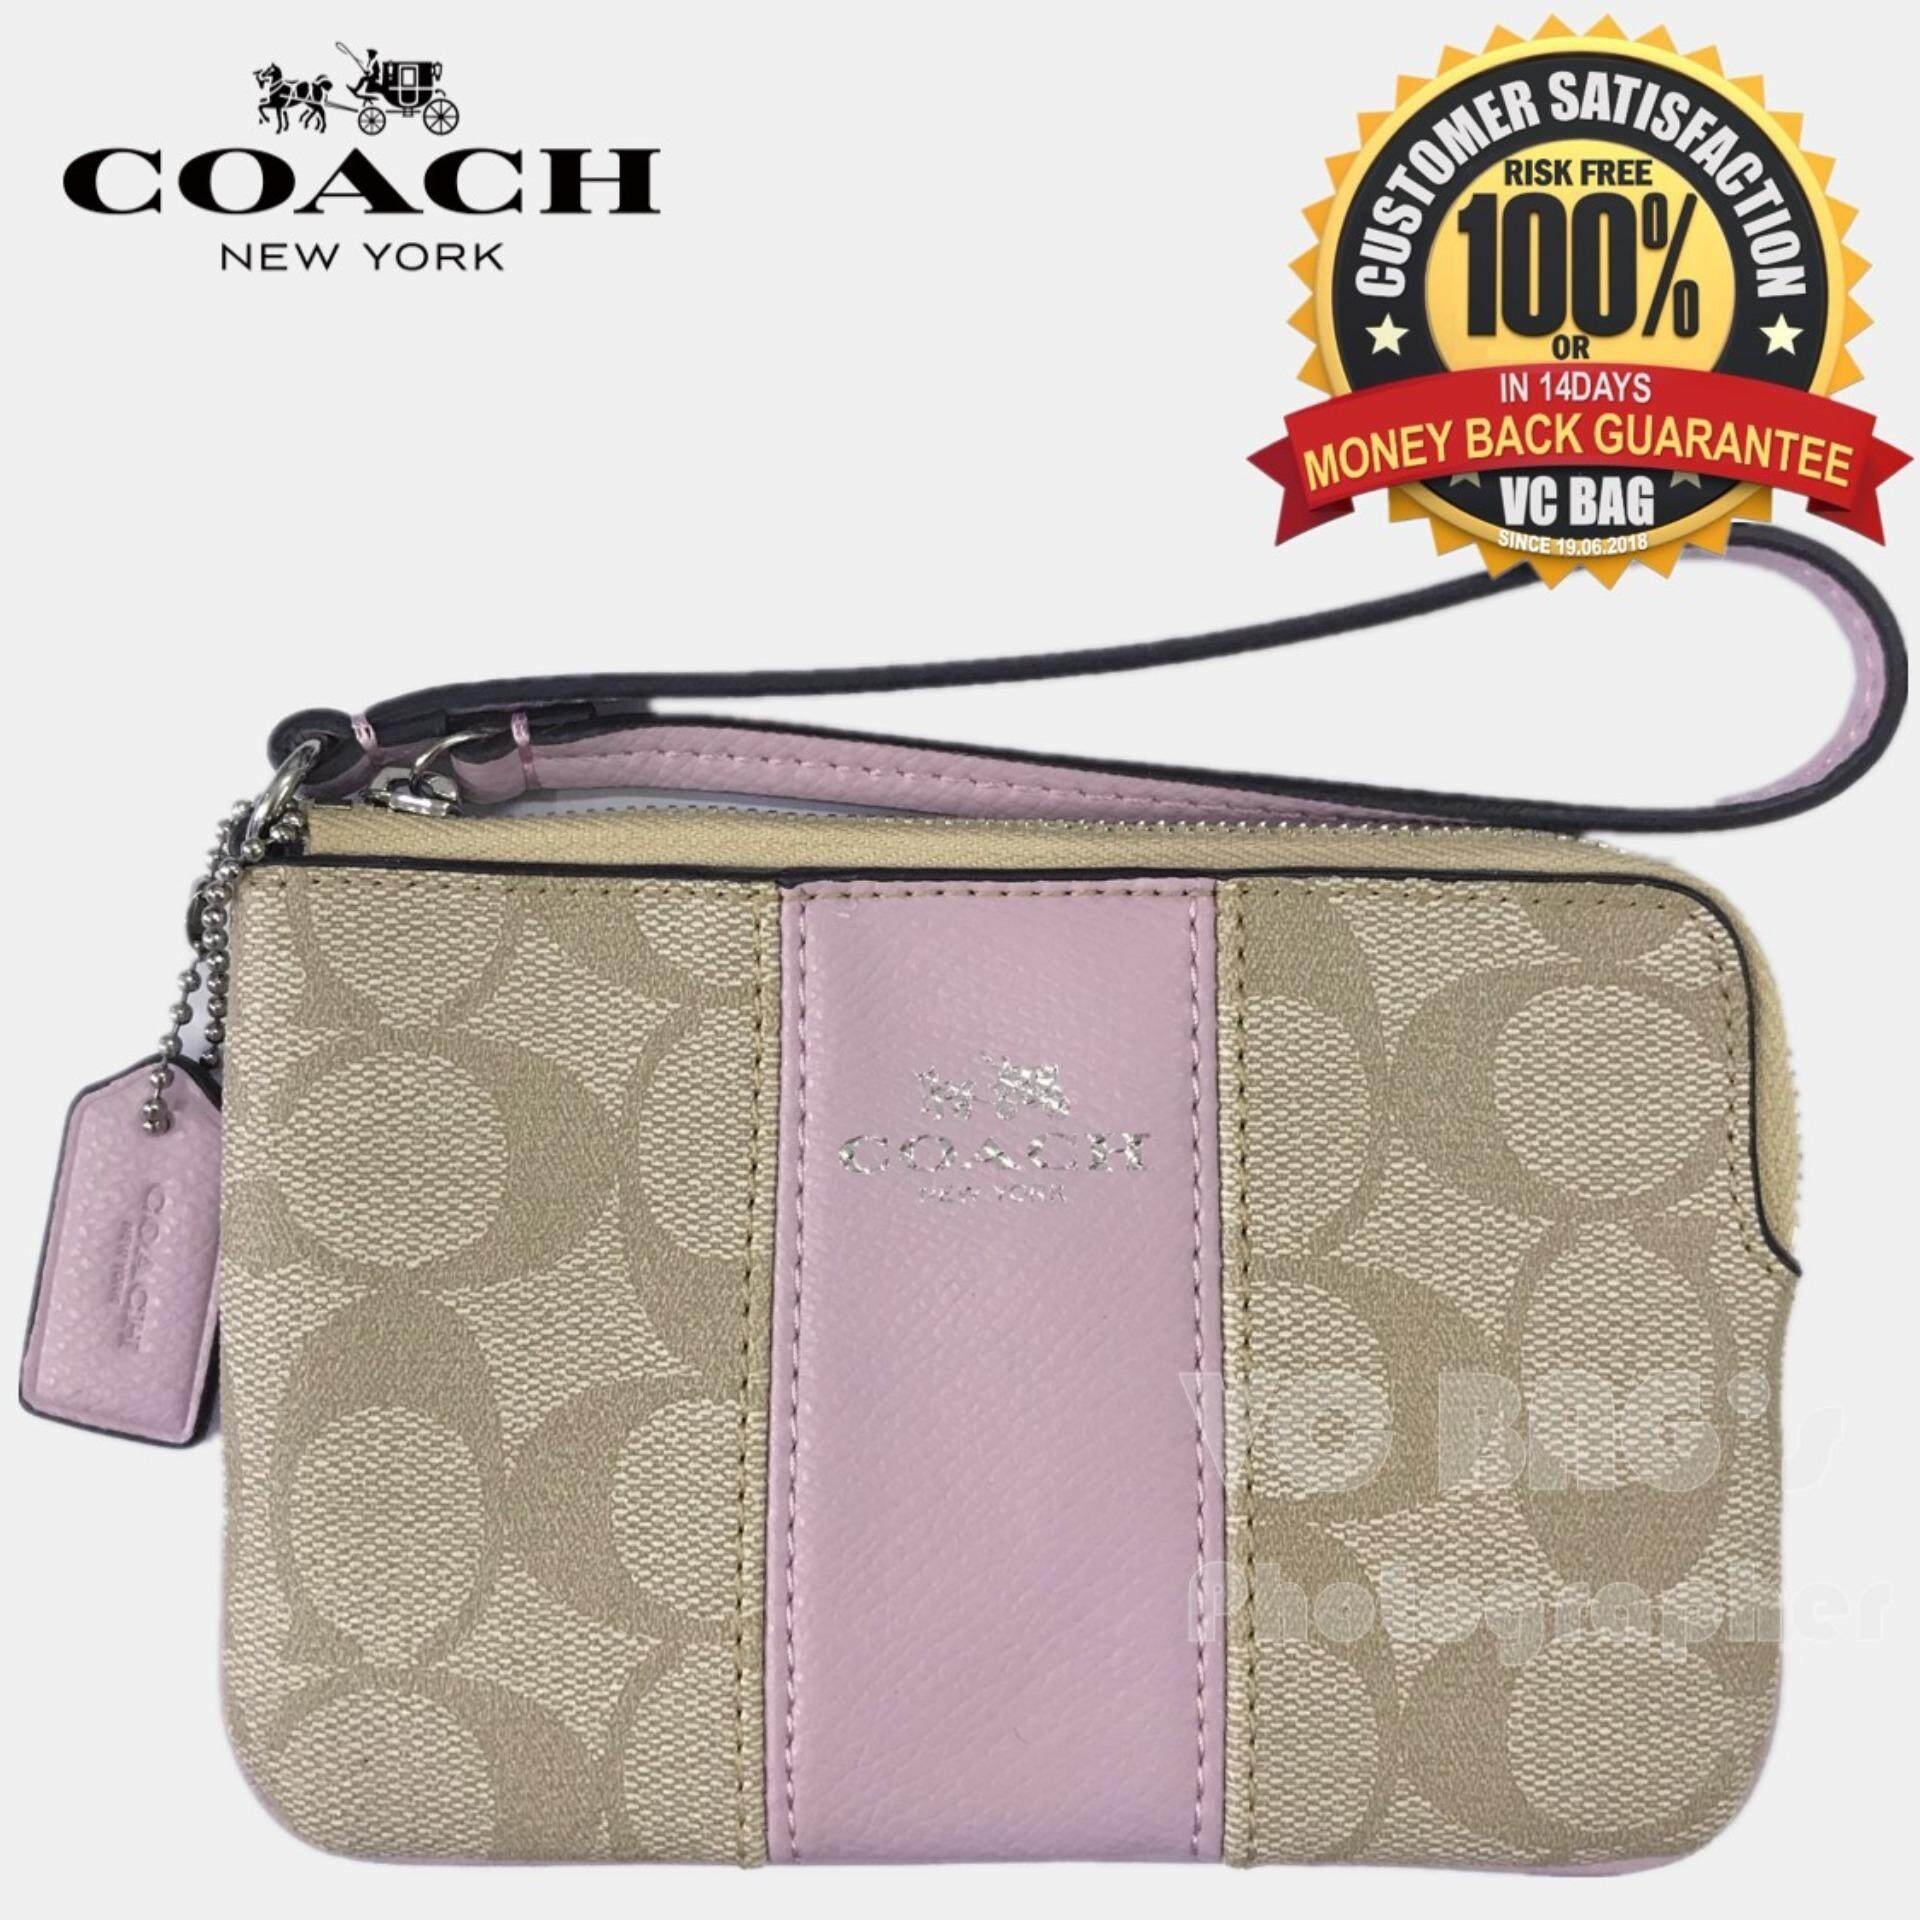 a132f6e11a83 COACH F64233 Corner Zip Wristlet in Signature Coated Canvas with Leather  Bag  Silver Light